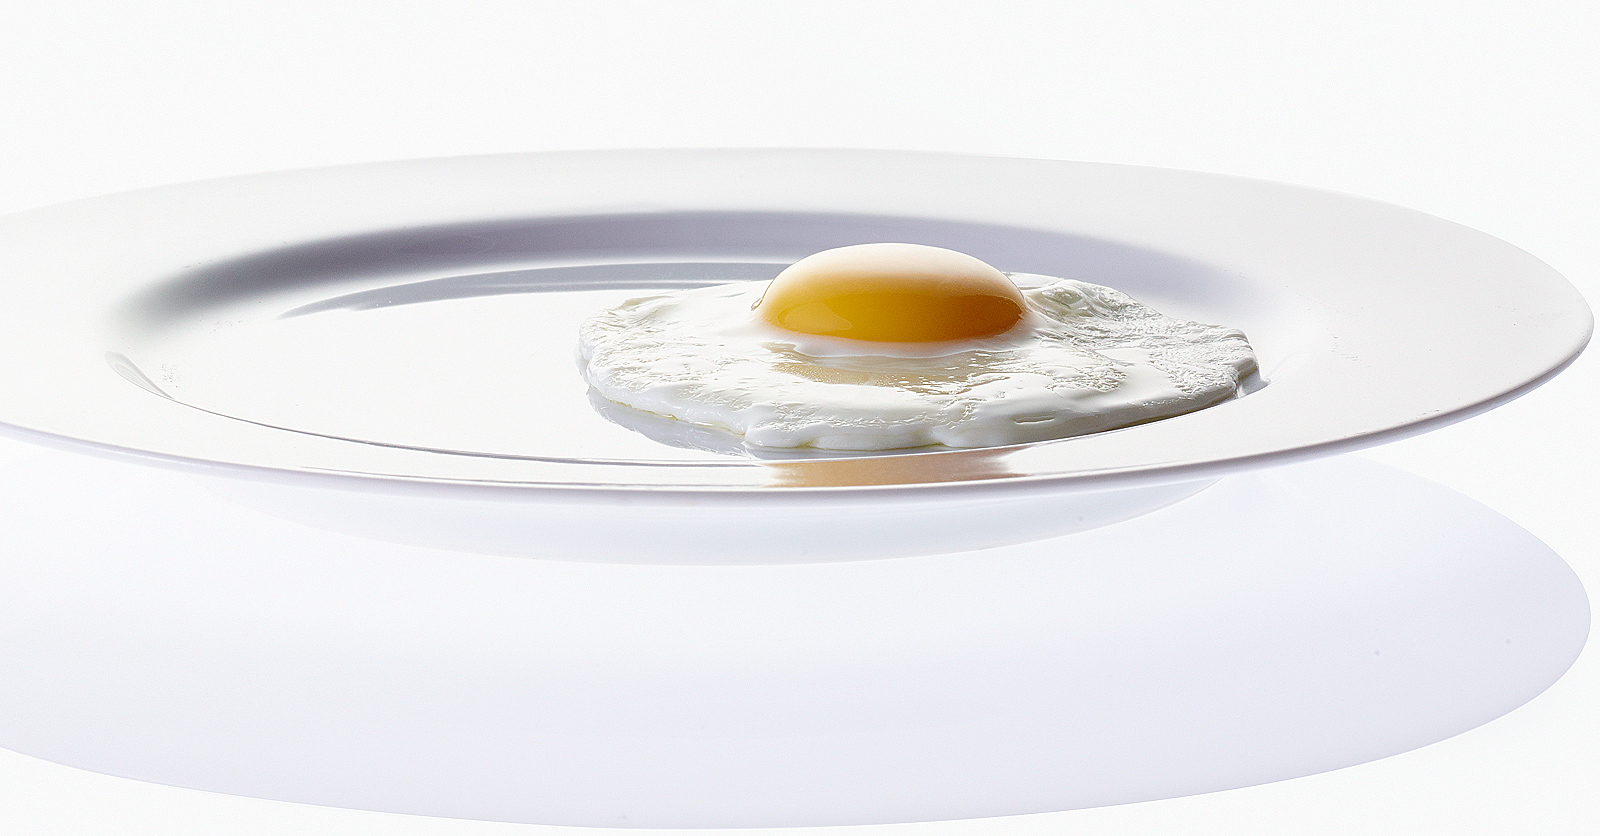 Egg sunny side up- Fried egg- Egg breakfast- Perfect egg